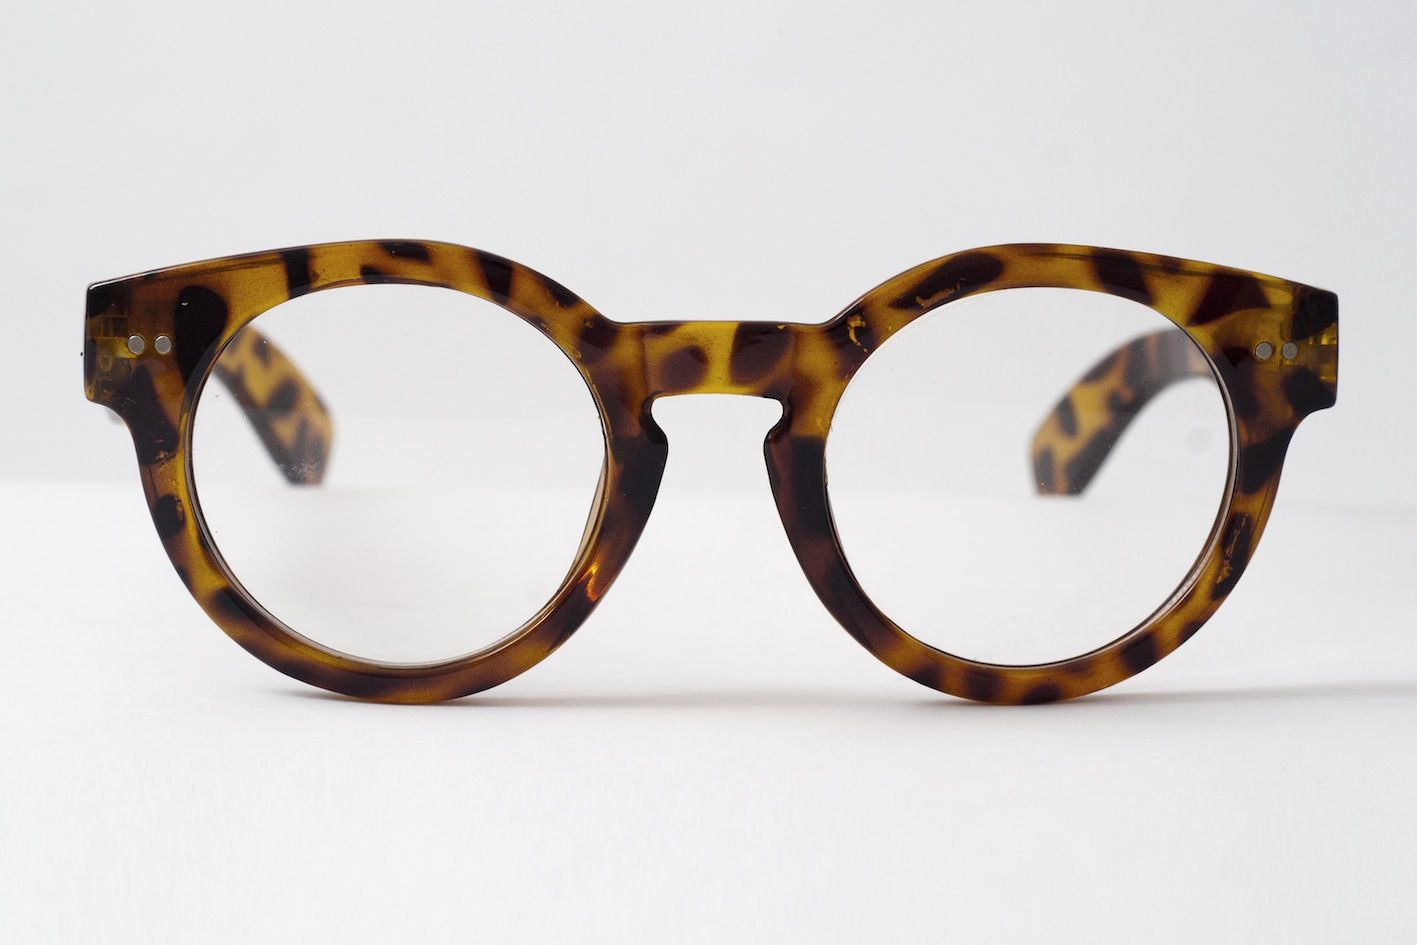 17 best images about eyewear on pinterest oliver peoples oakley sunglasses and glasses